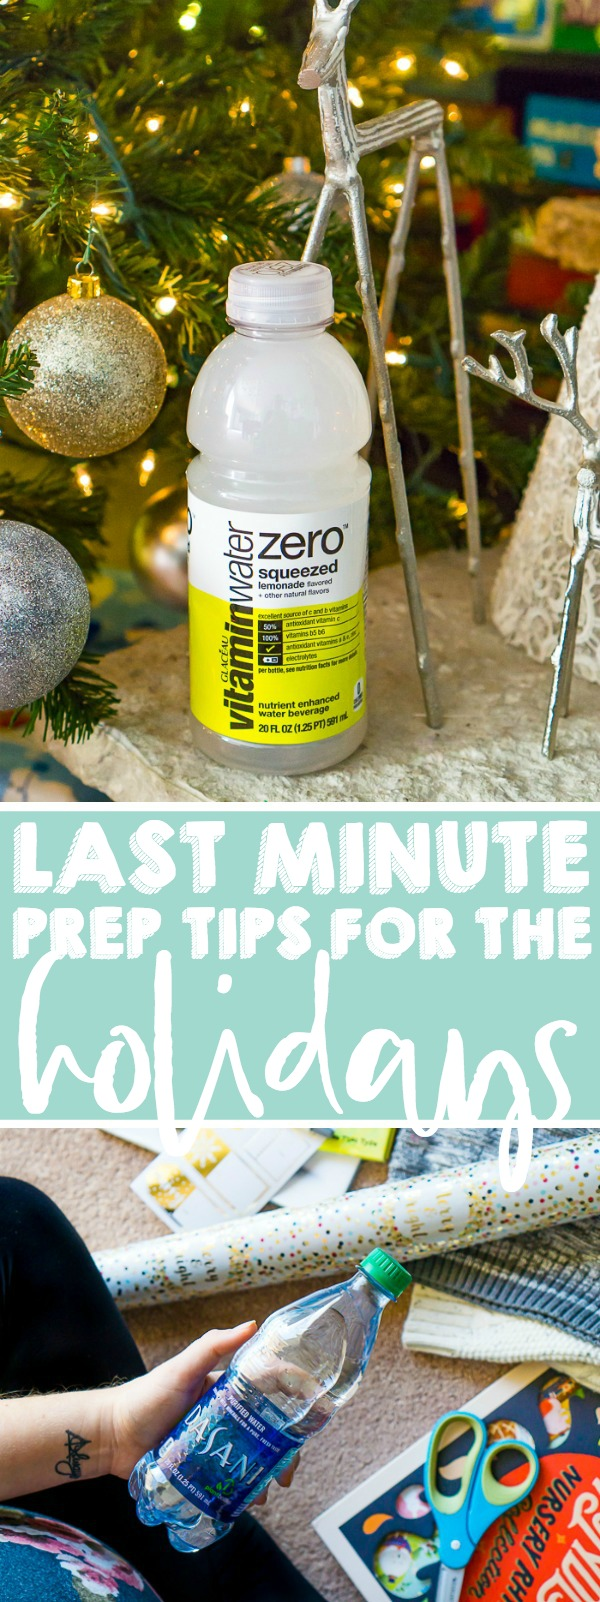 Today I'm sharing last minute tips for surviving the holiday! With only a week before Christmas, I'm sure you have a lot of holiday prep still ahead of you, so make sure to prioritize your health and sanity! You deserve a happy holiday! | THE LOVE NERDS #christmasprep #holidaytips #ad #HydrateYourDay